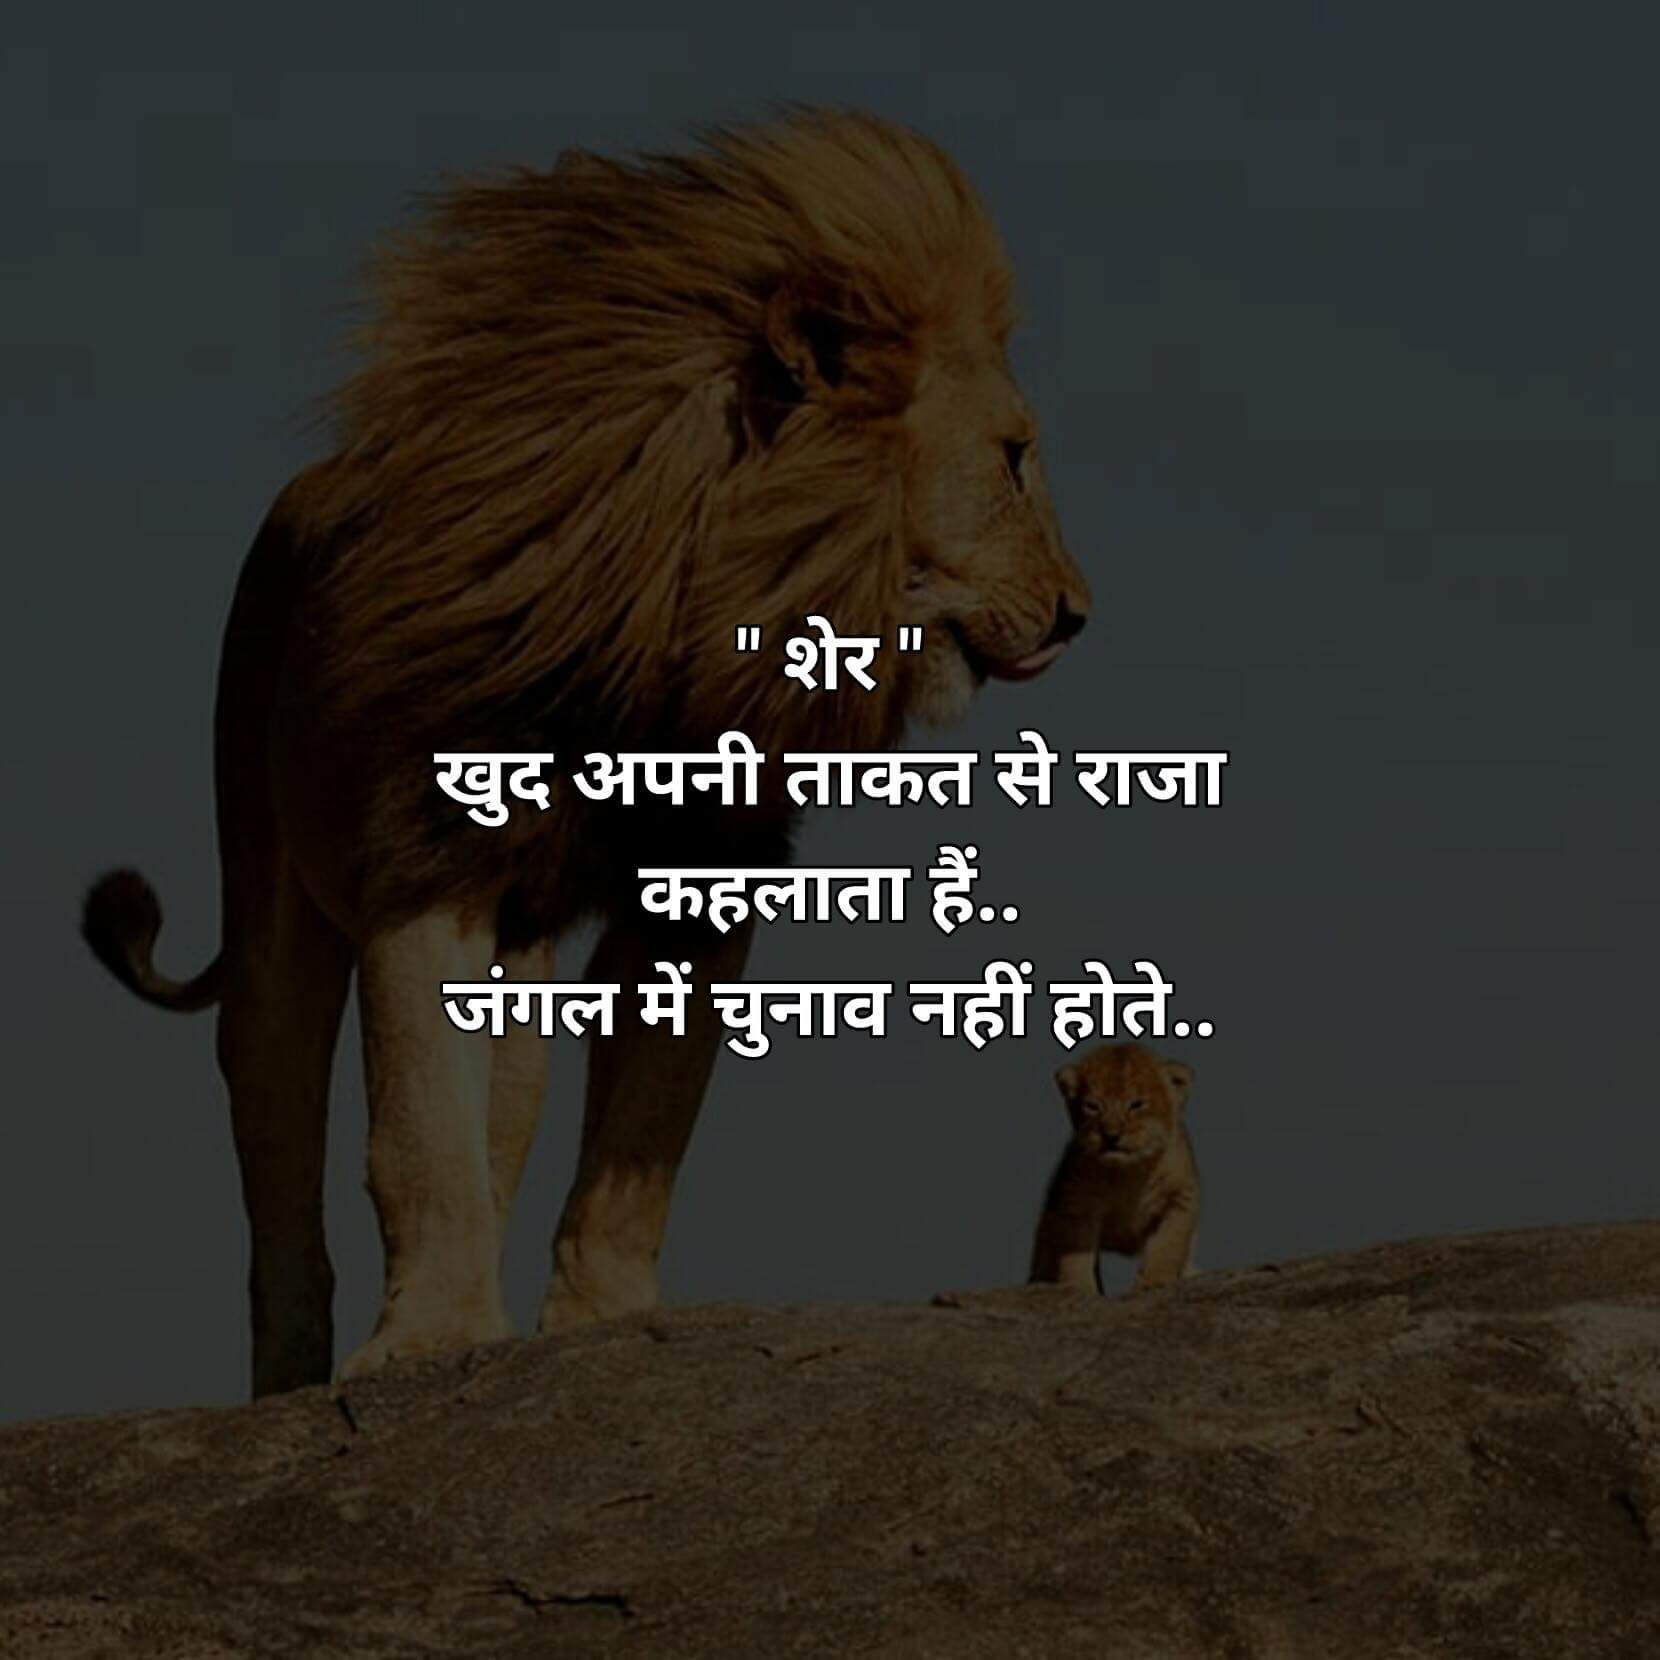 Pin by Pooja Mahle on crazy | Marathi quotes, Motivational picture